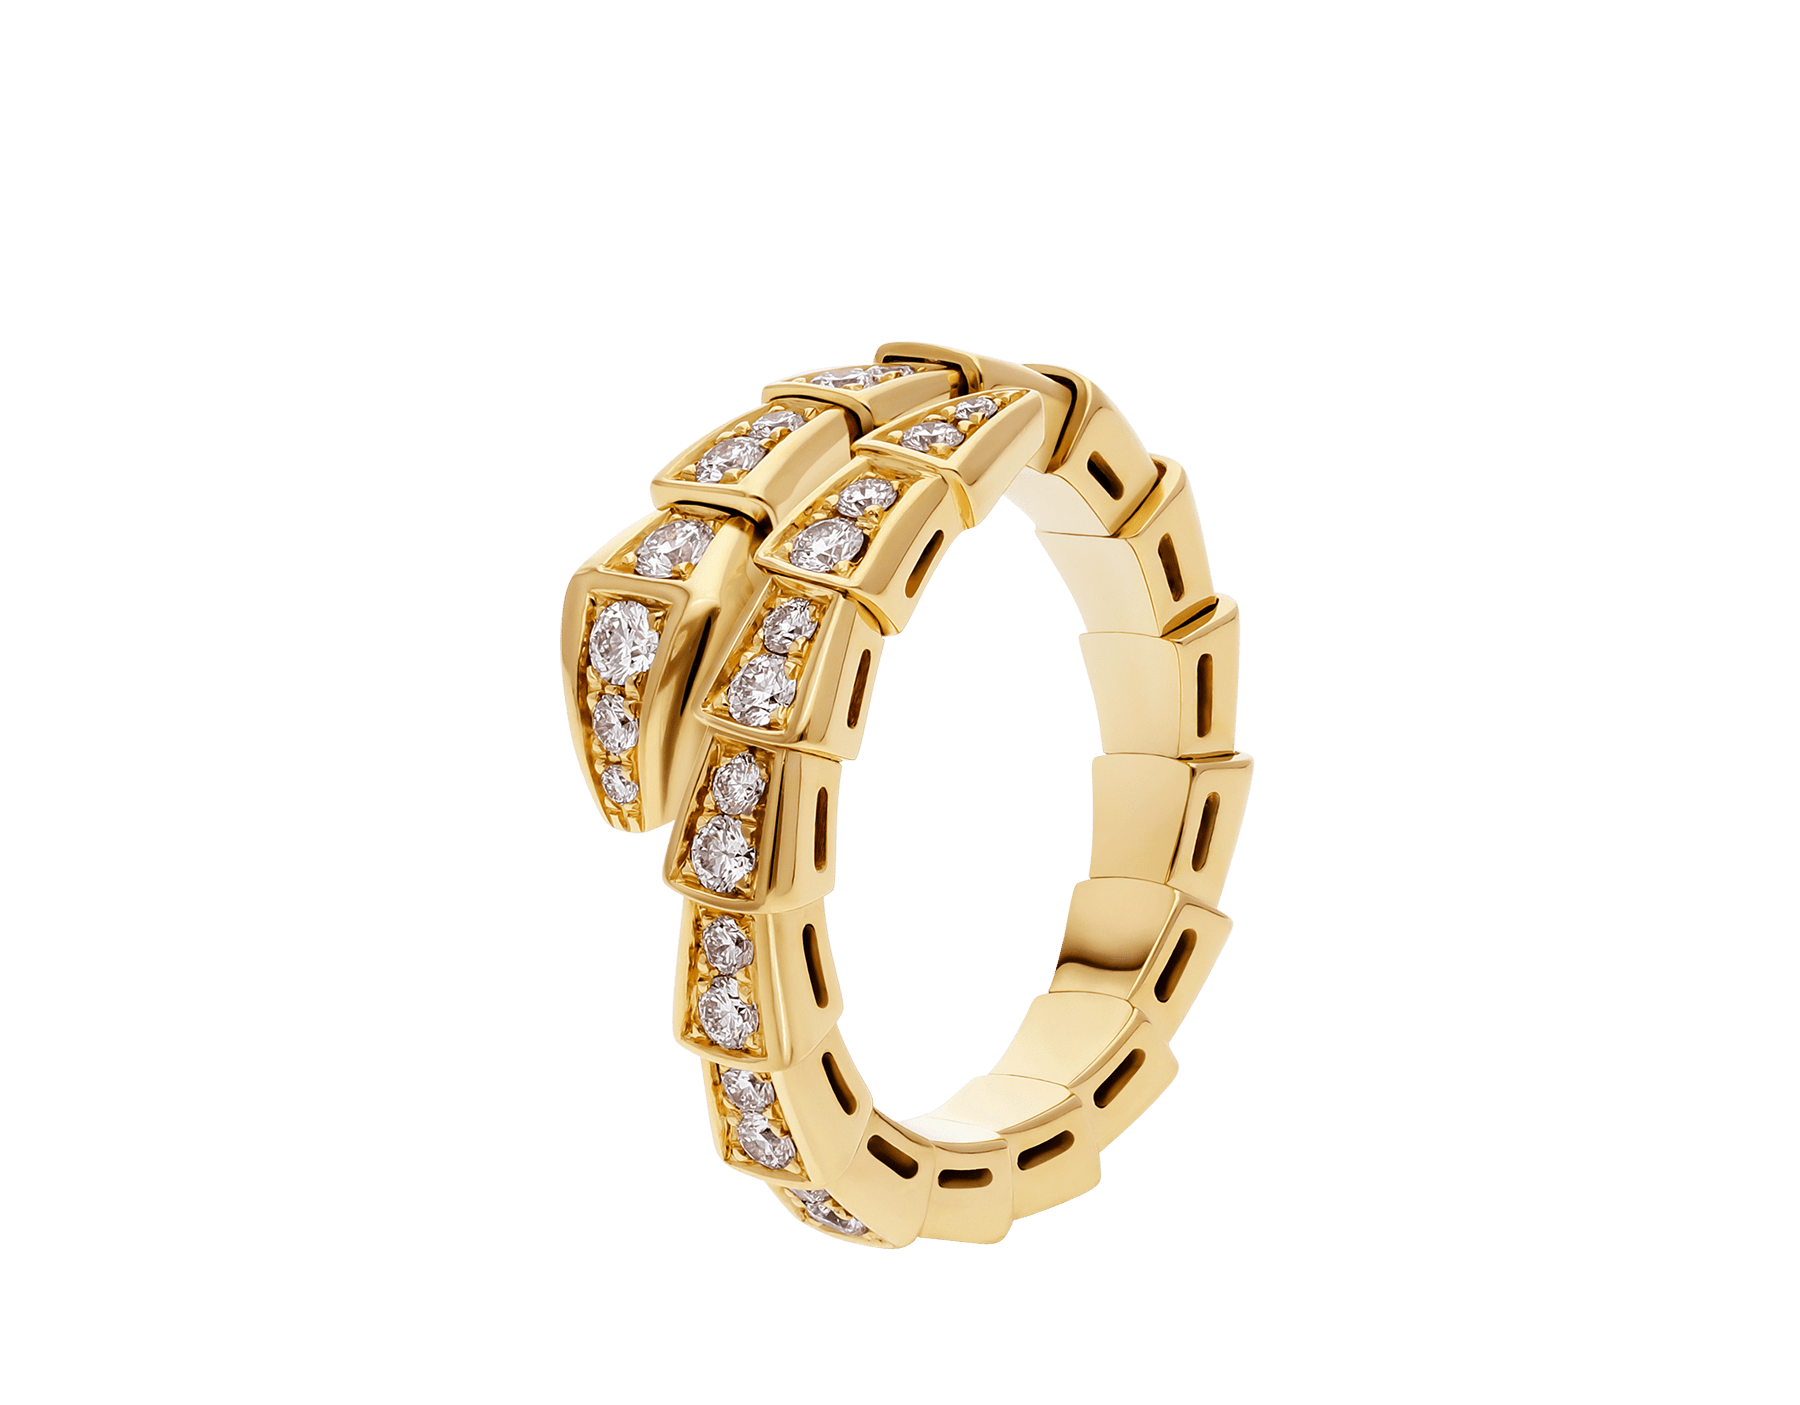 Serpenti Viper 18 kt yellow gold ring with pavé diamonds AN858981 image 1